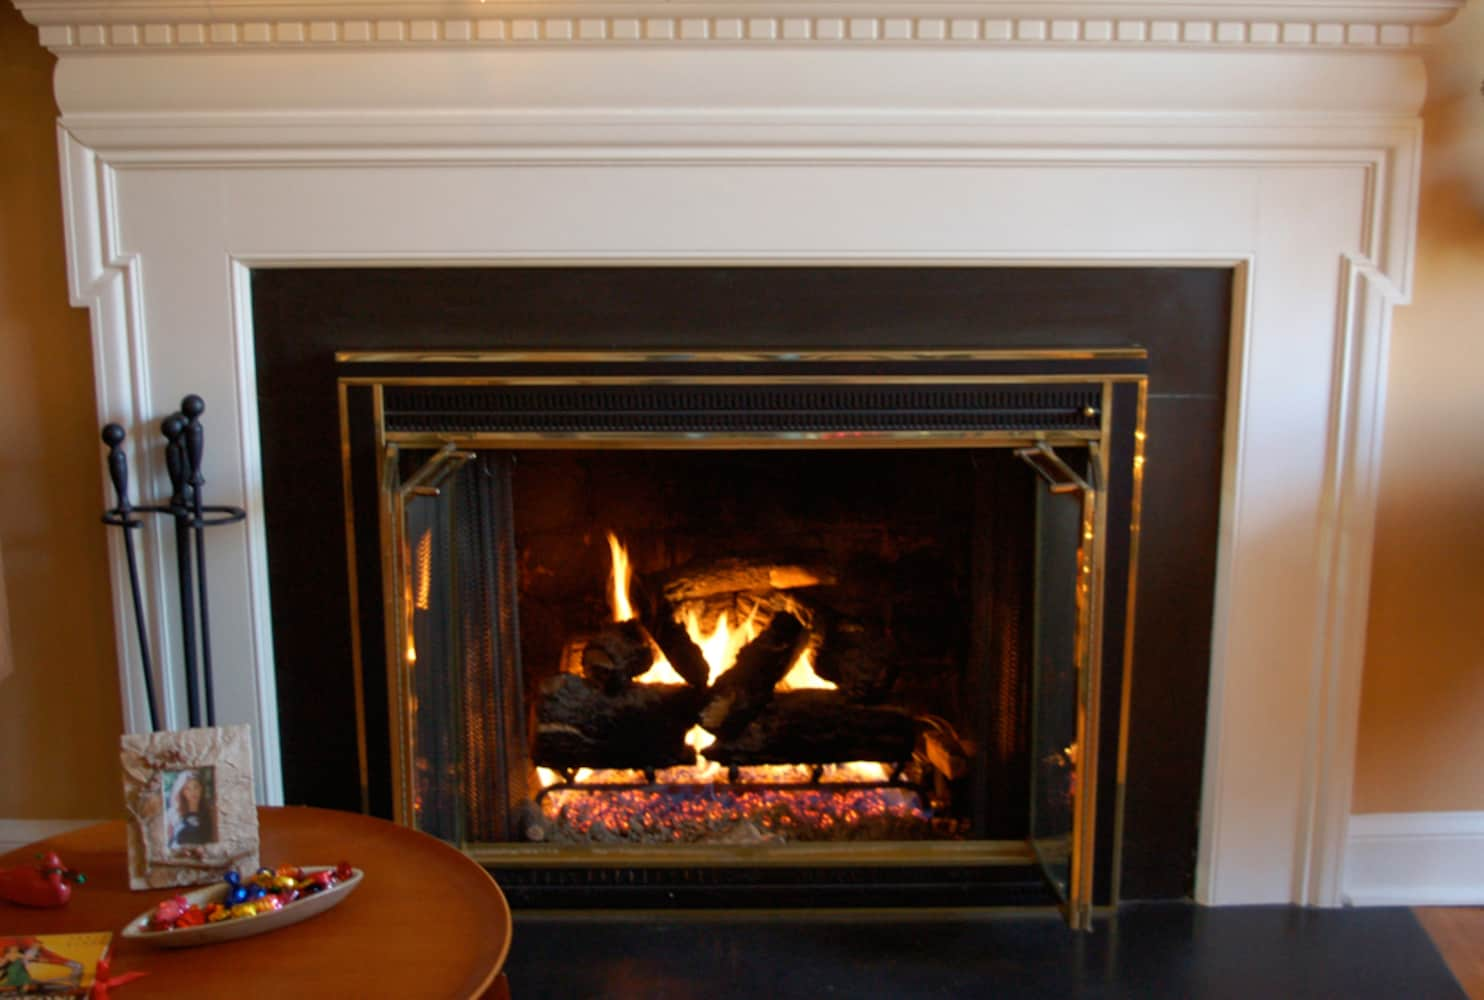 How To Options for converting a fireplace to natural gas